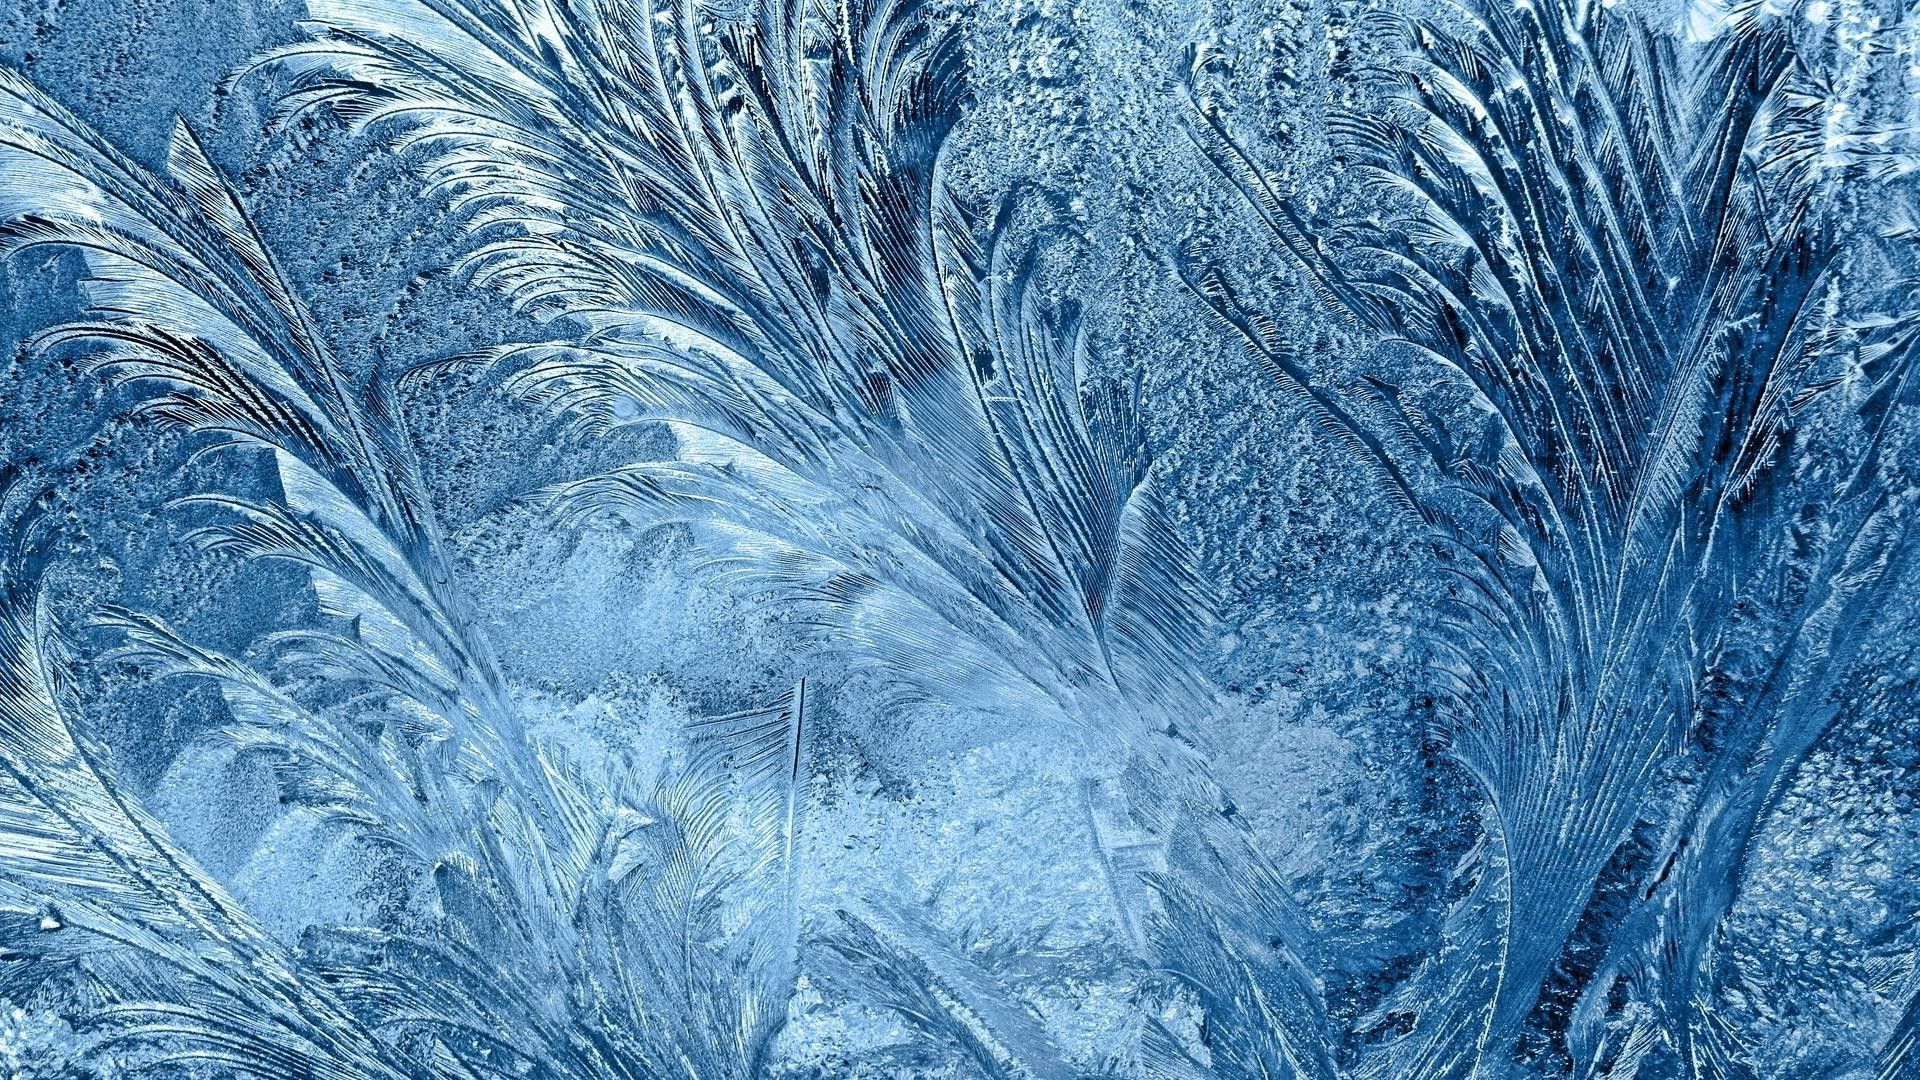 Winter Patterns On The Window background wallpaper